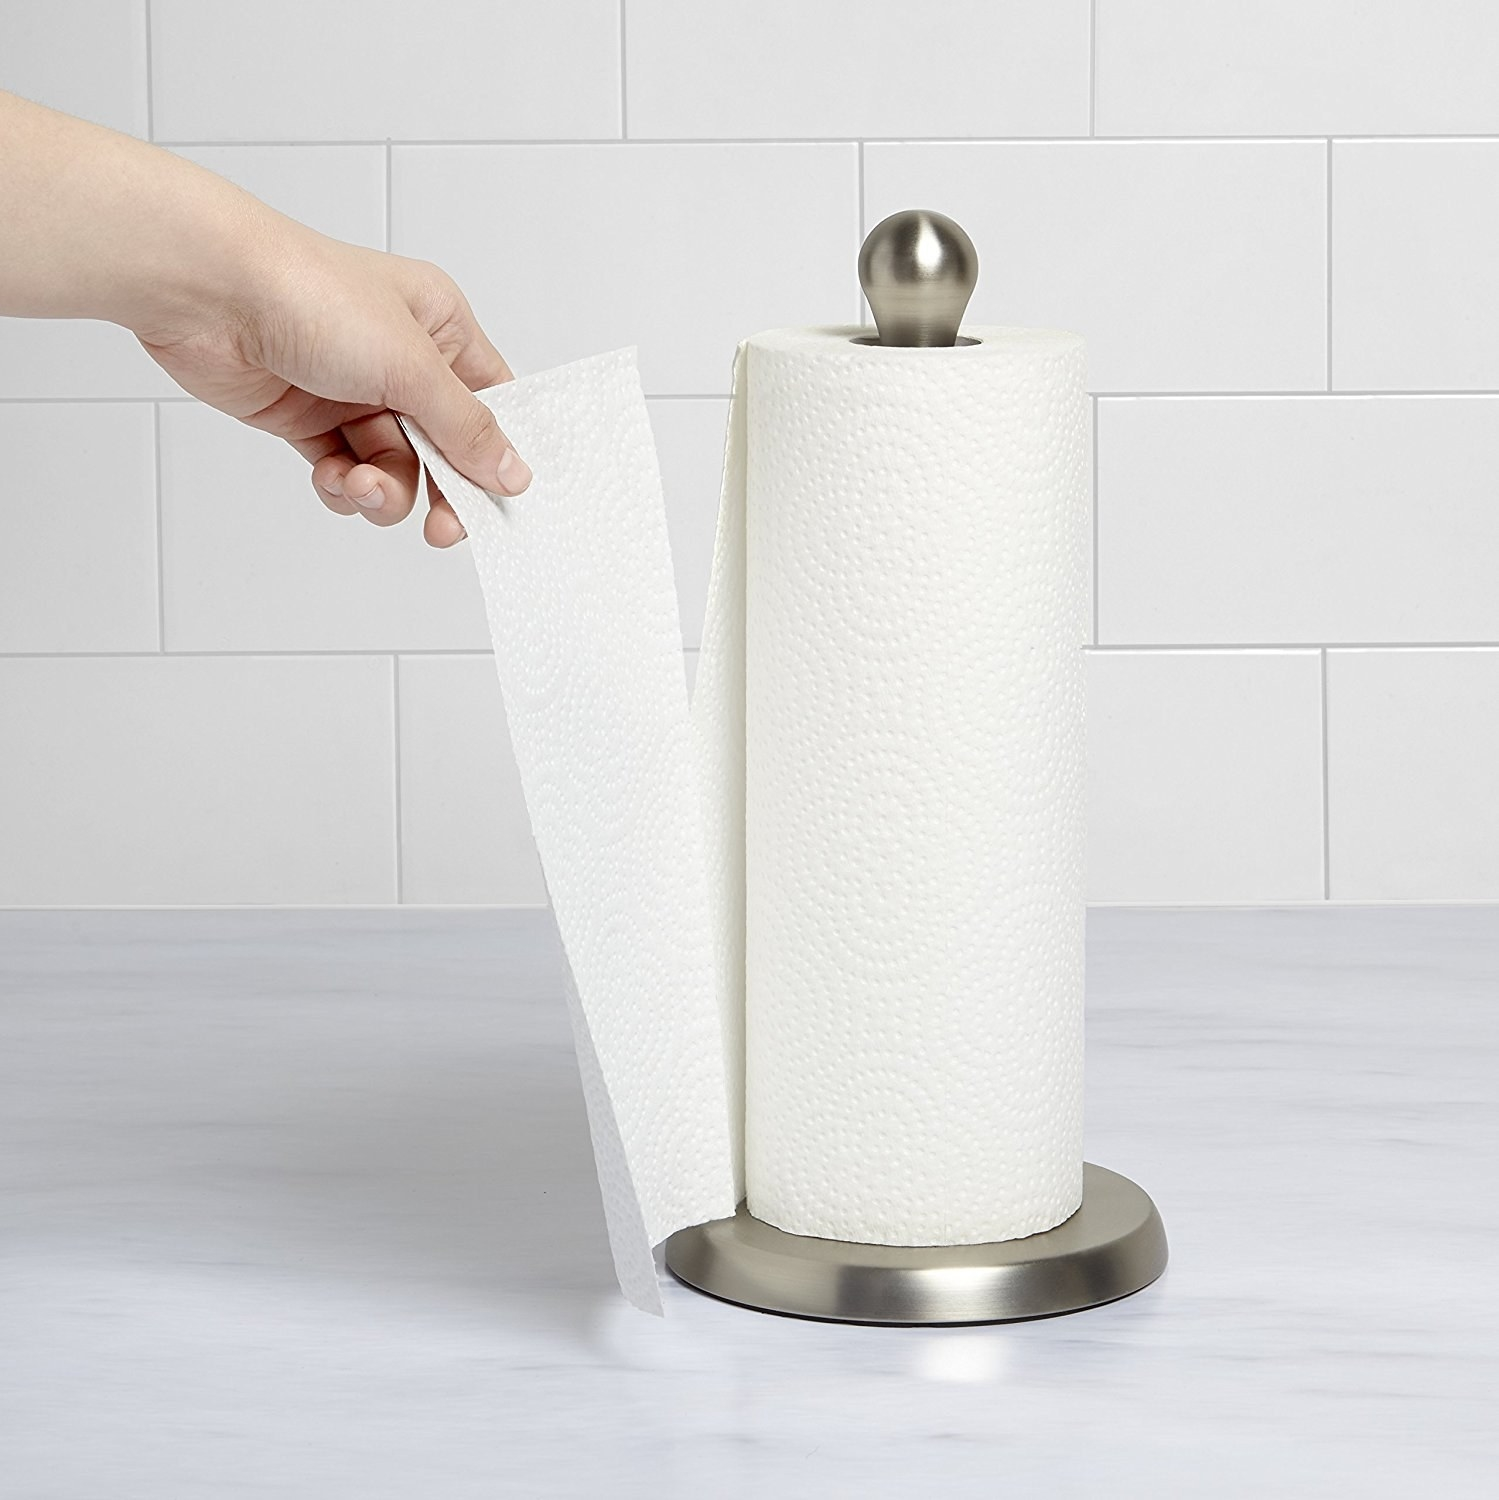 person tearing off a paper towel sheet off a paper towel holder